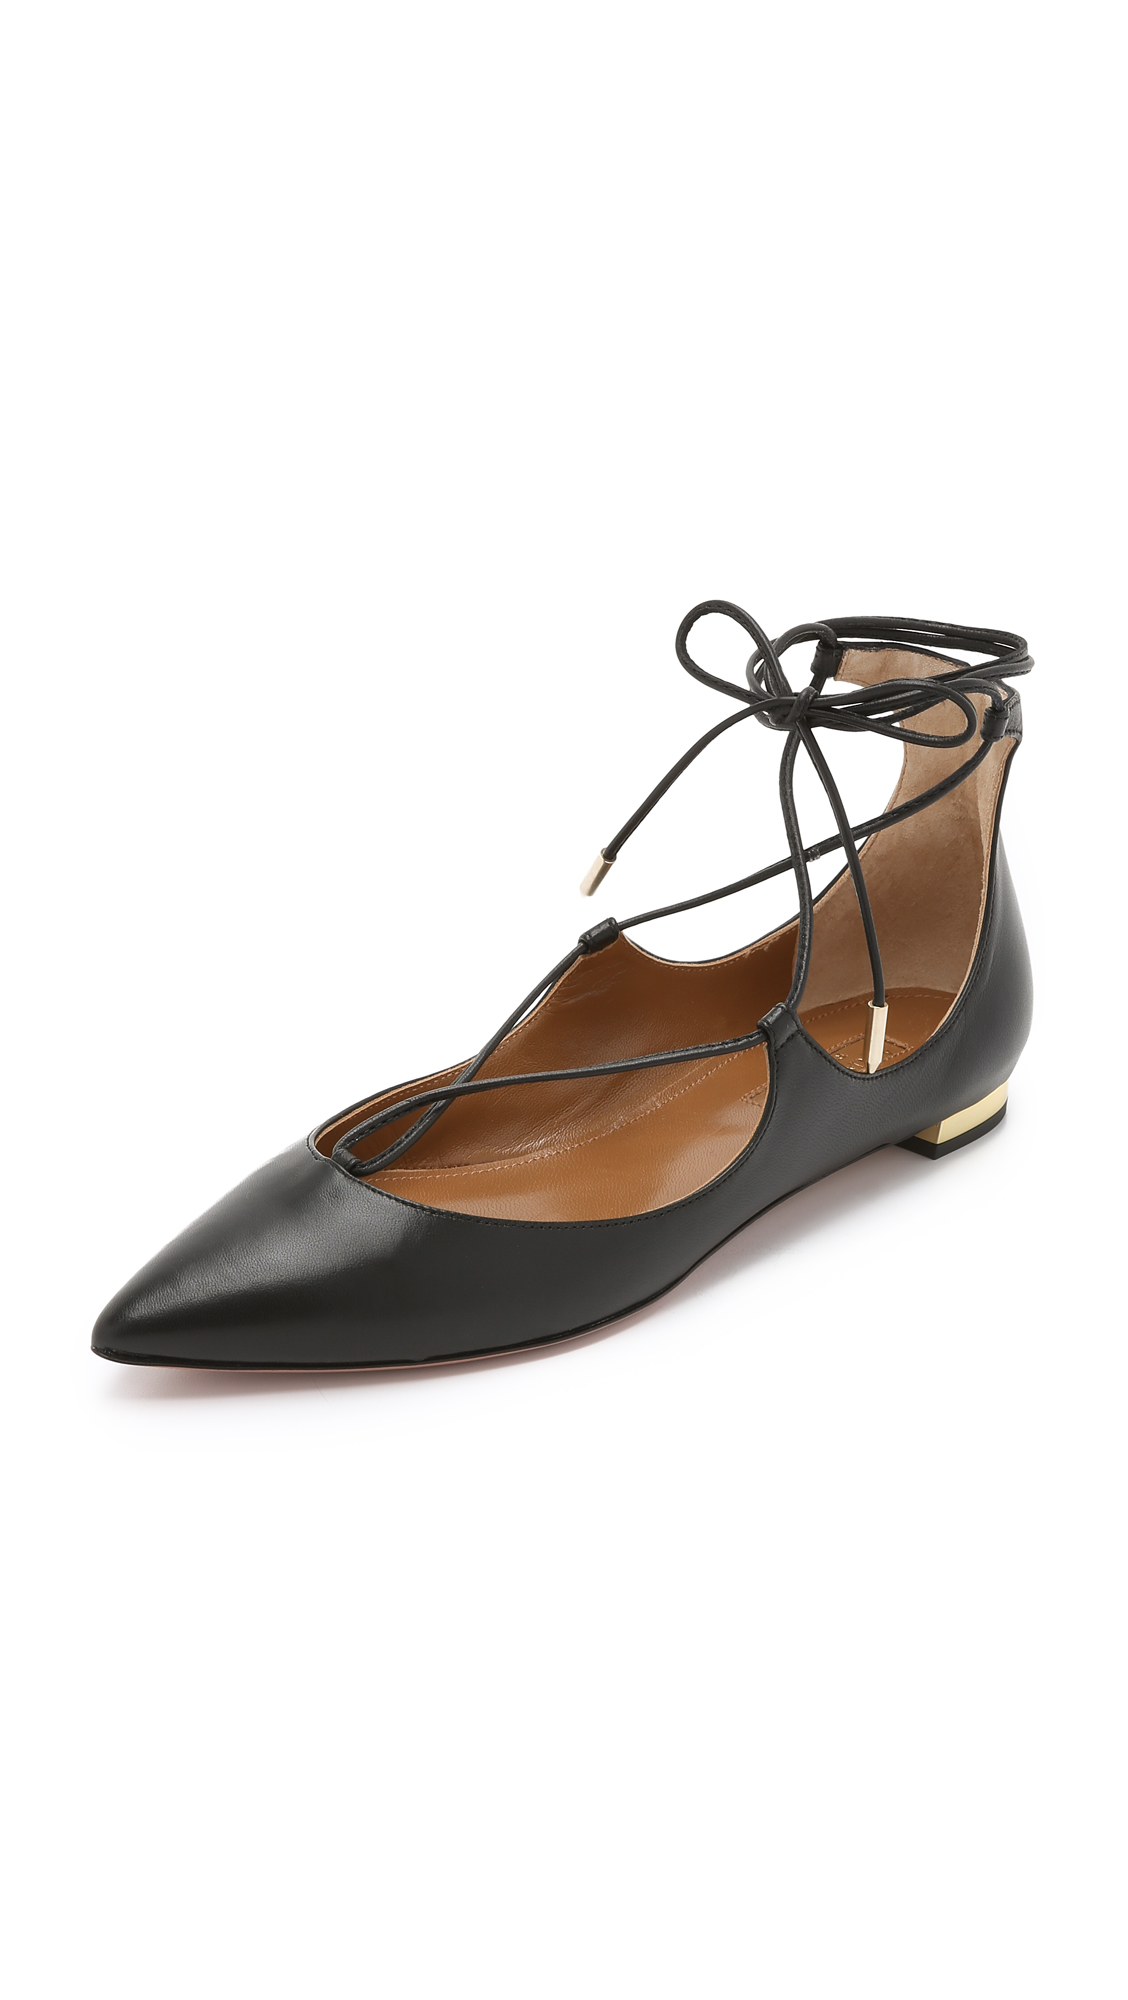 Christie Criss-Cross Leather Ankle Tie Flats in Black